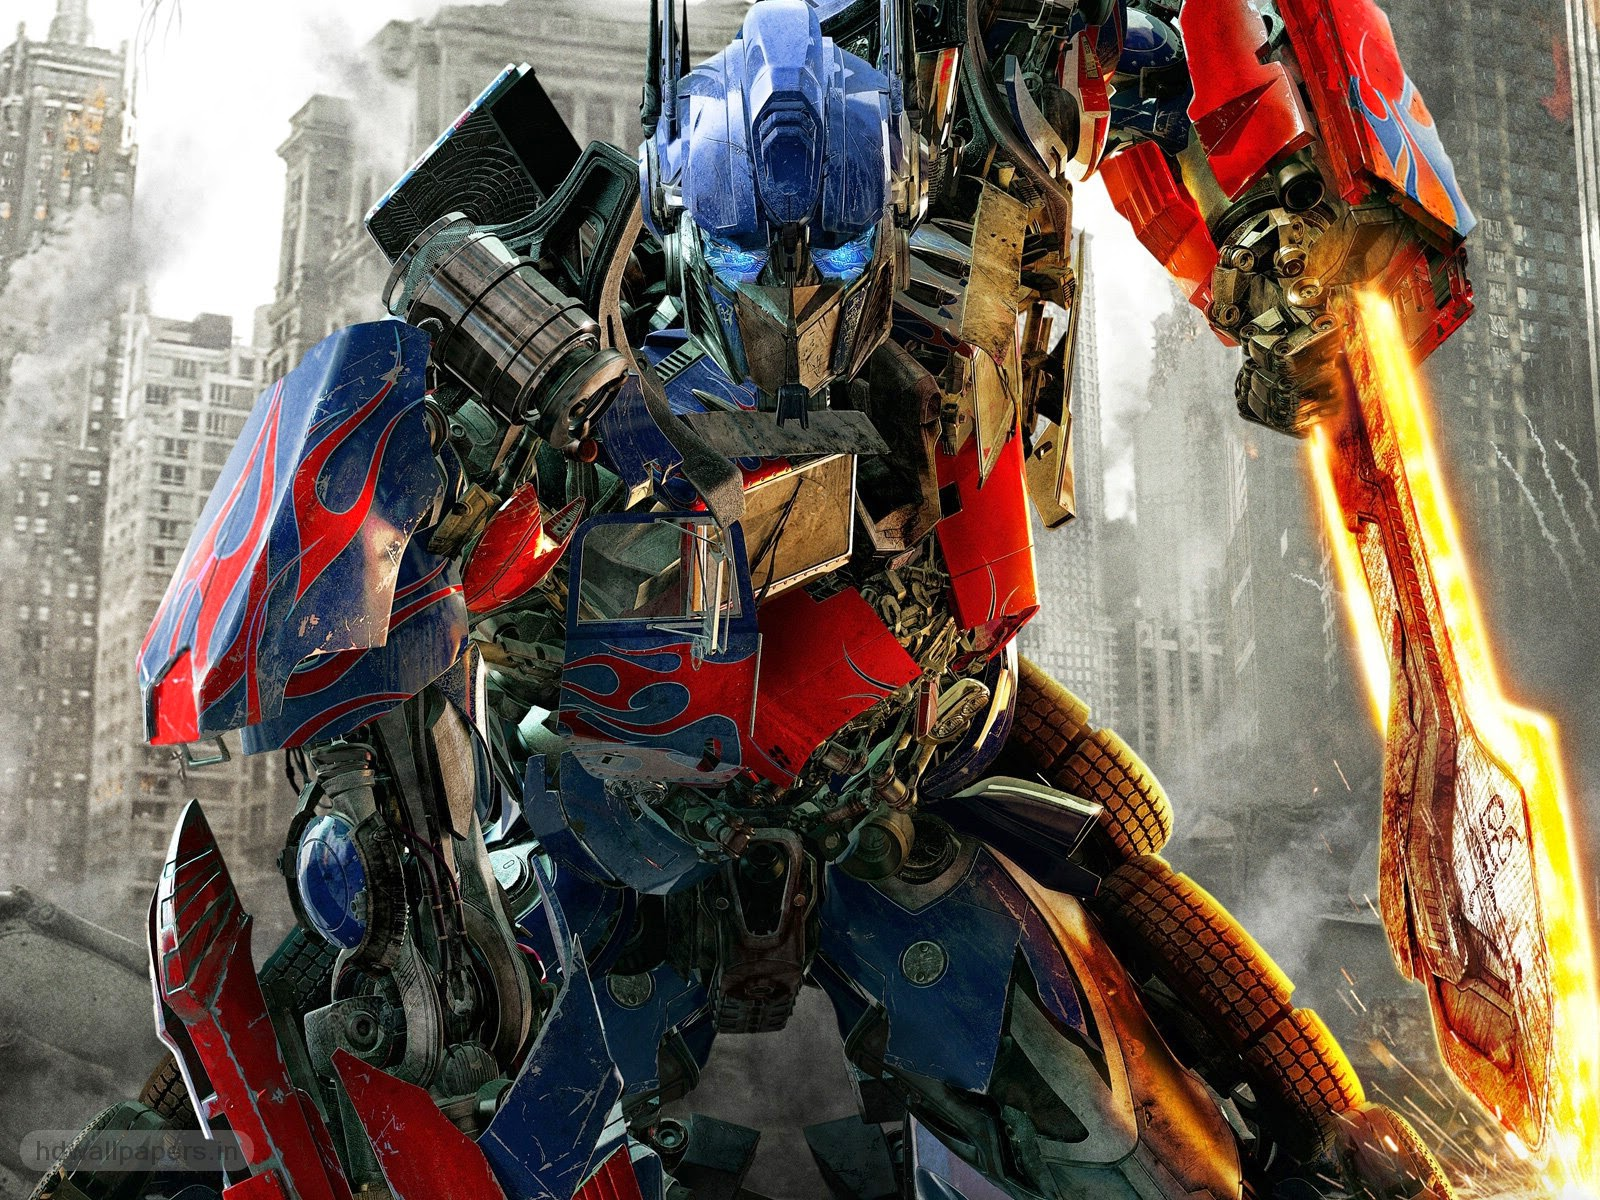 transformers wallpapers n backgrounds in hd - facebook